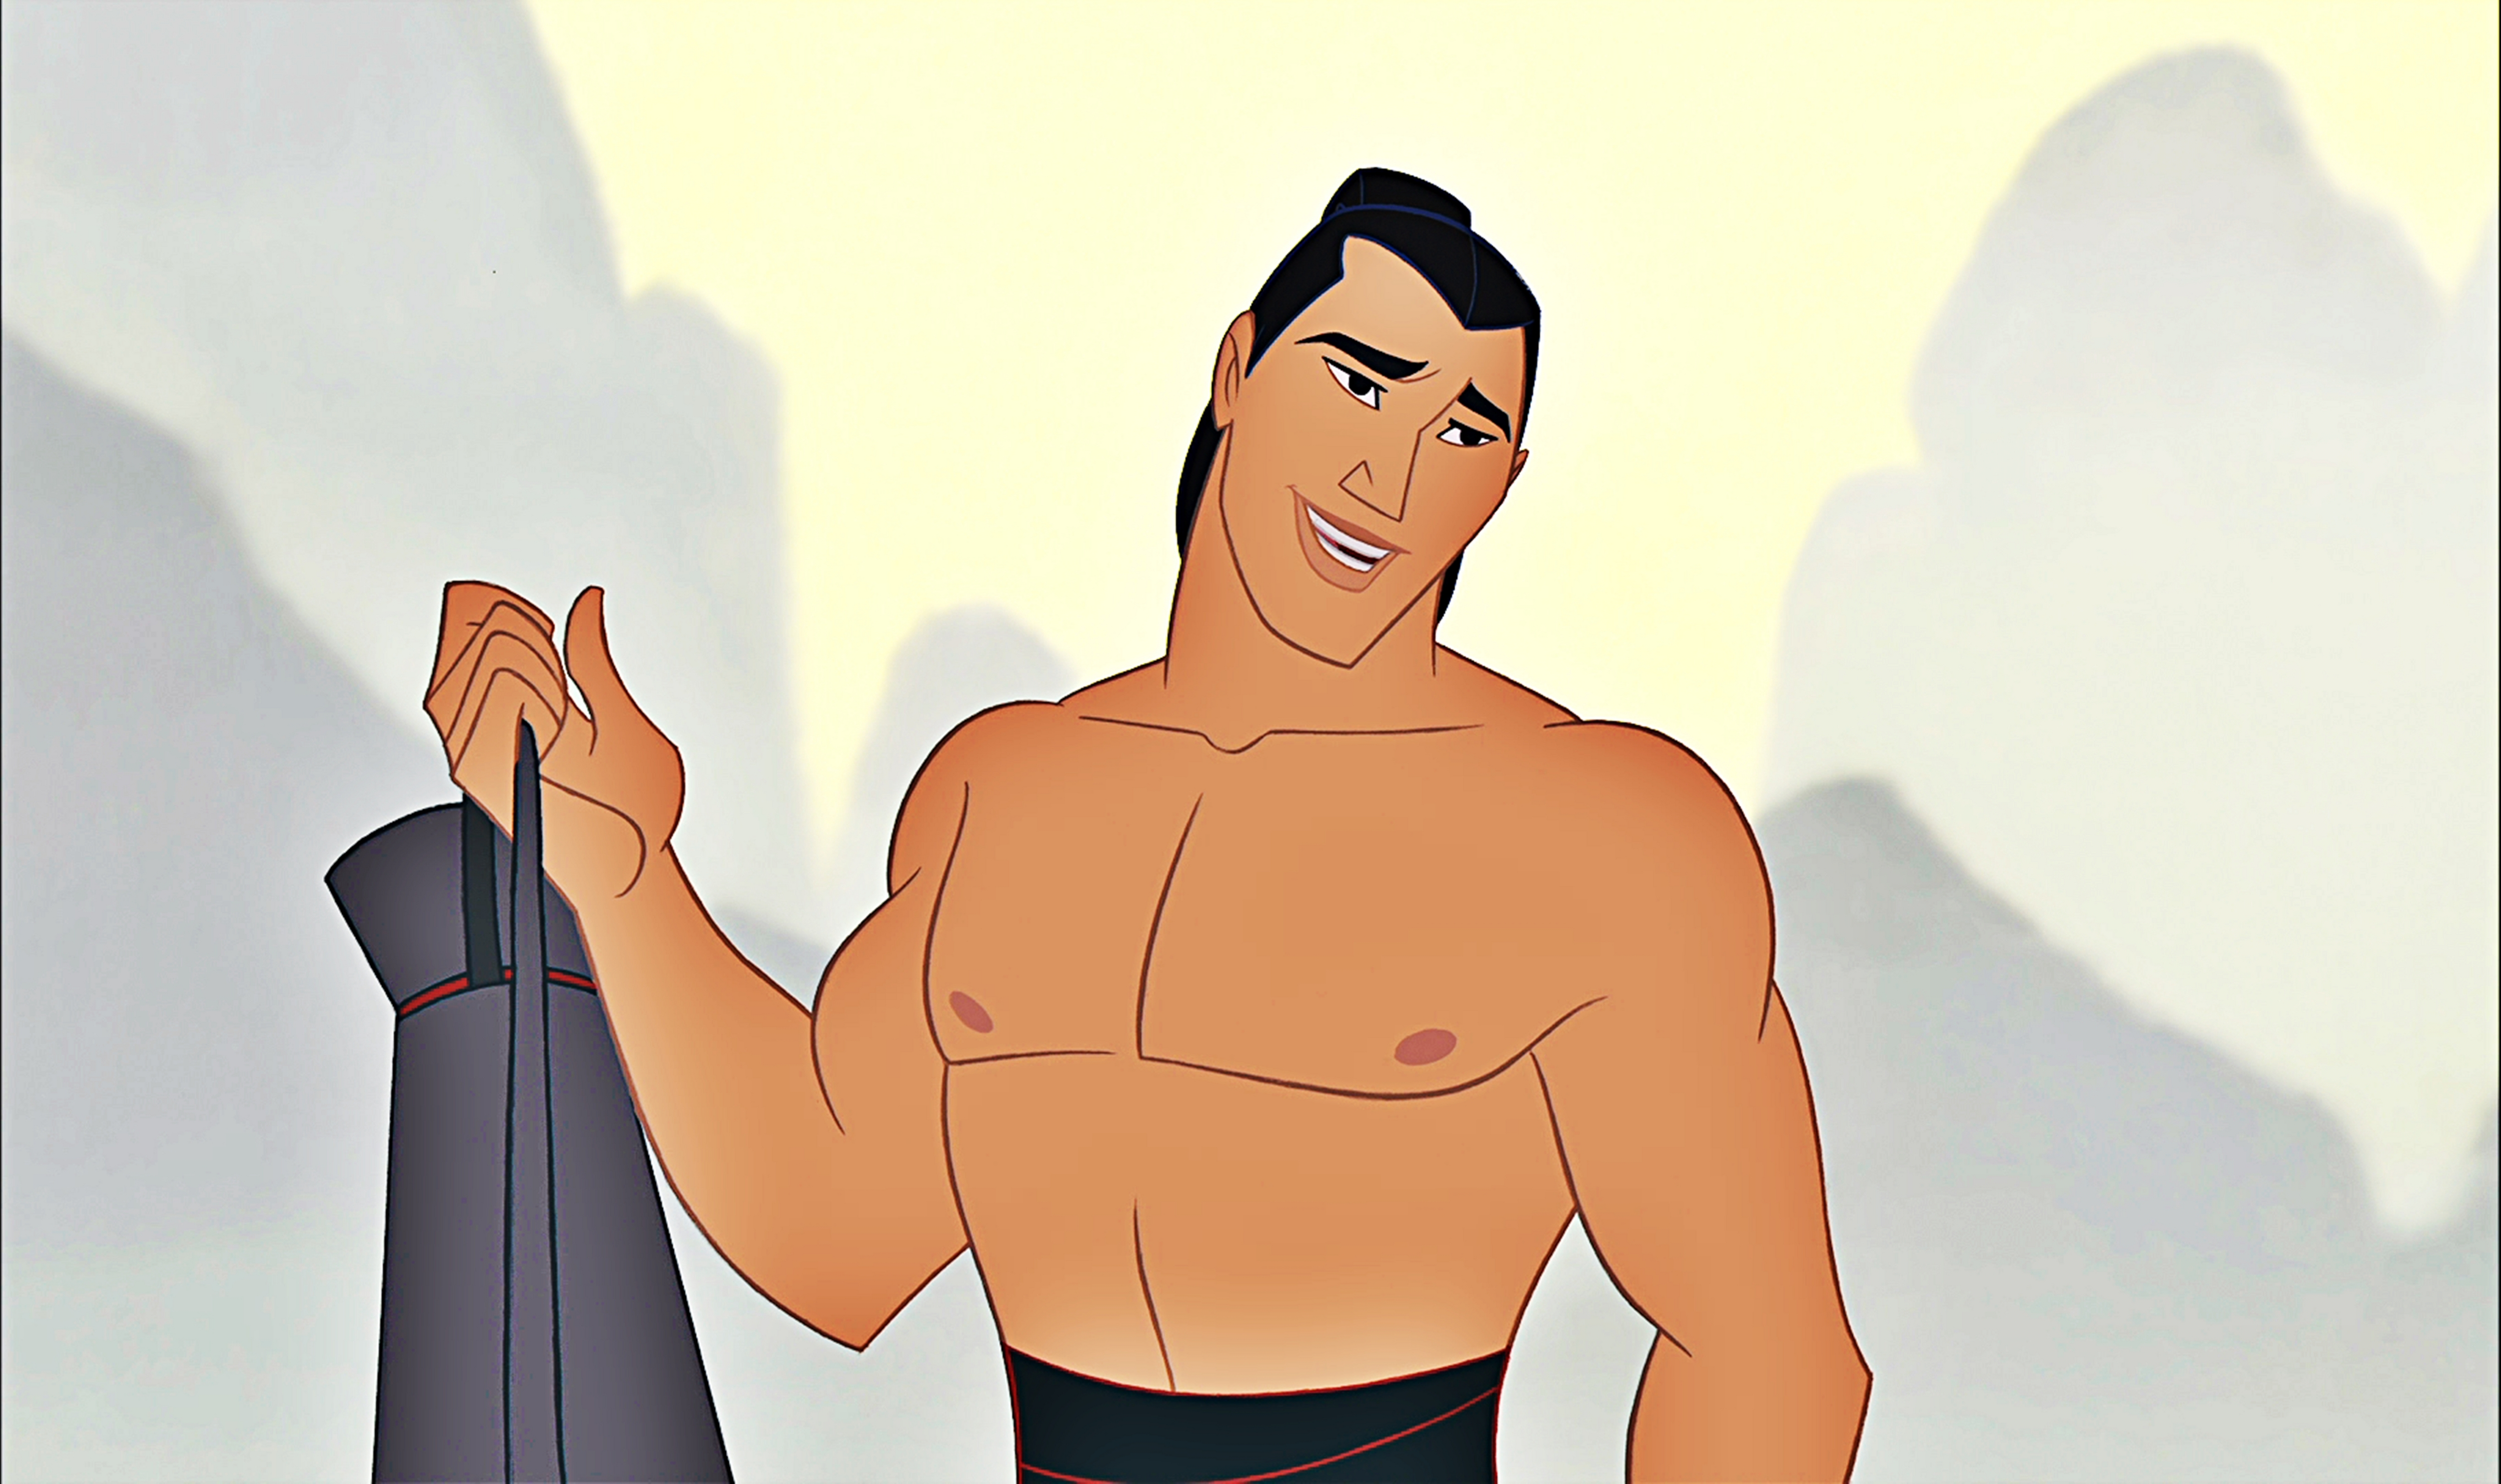 Uncategorized Captain Li Shang what does your disney prince crush say about taste in men playbuzz